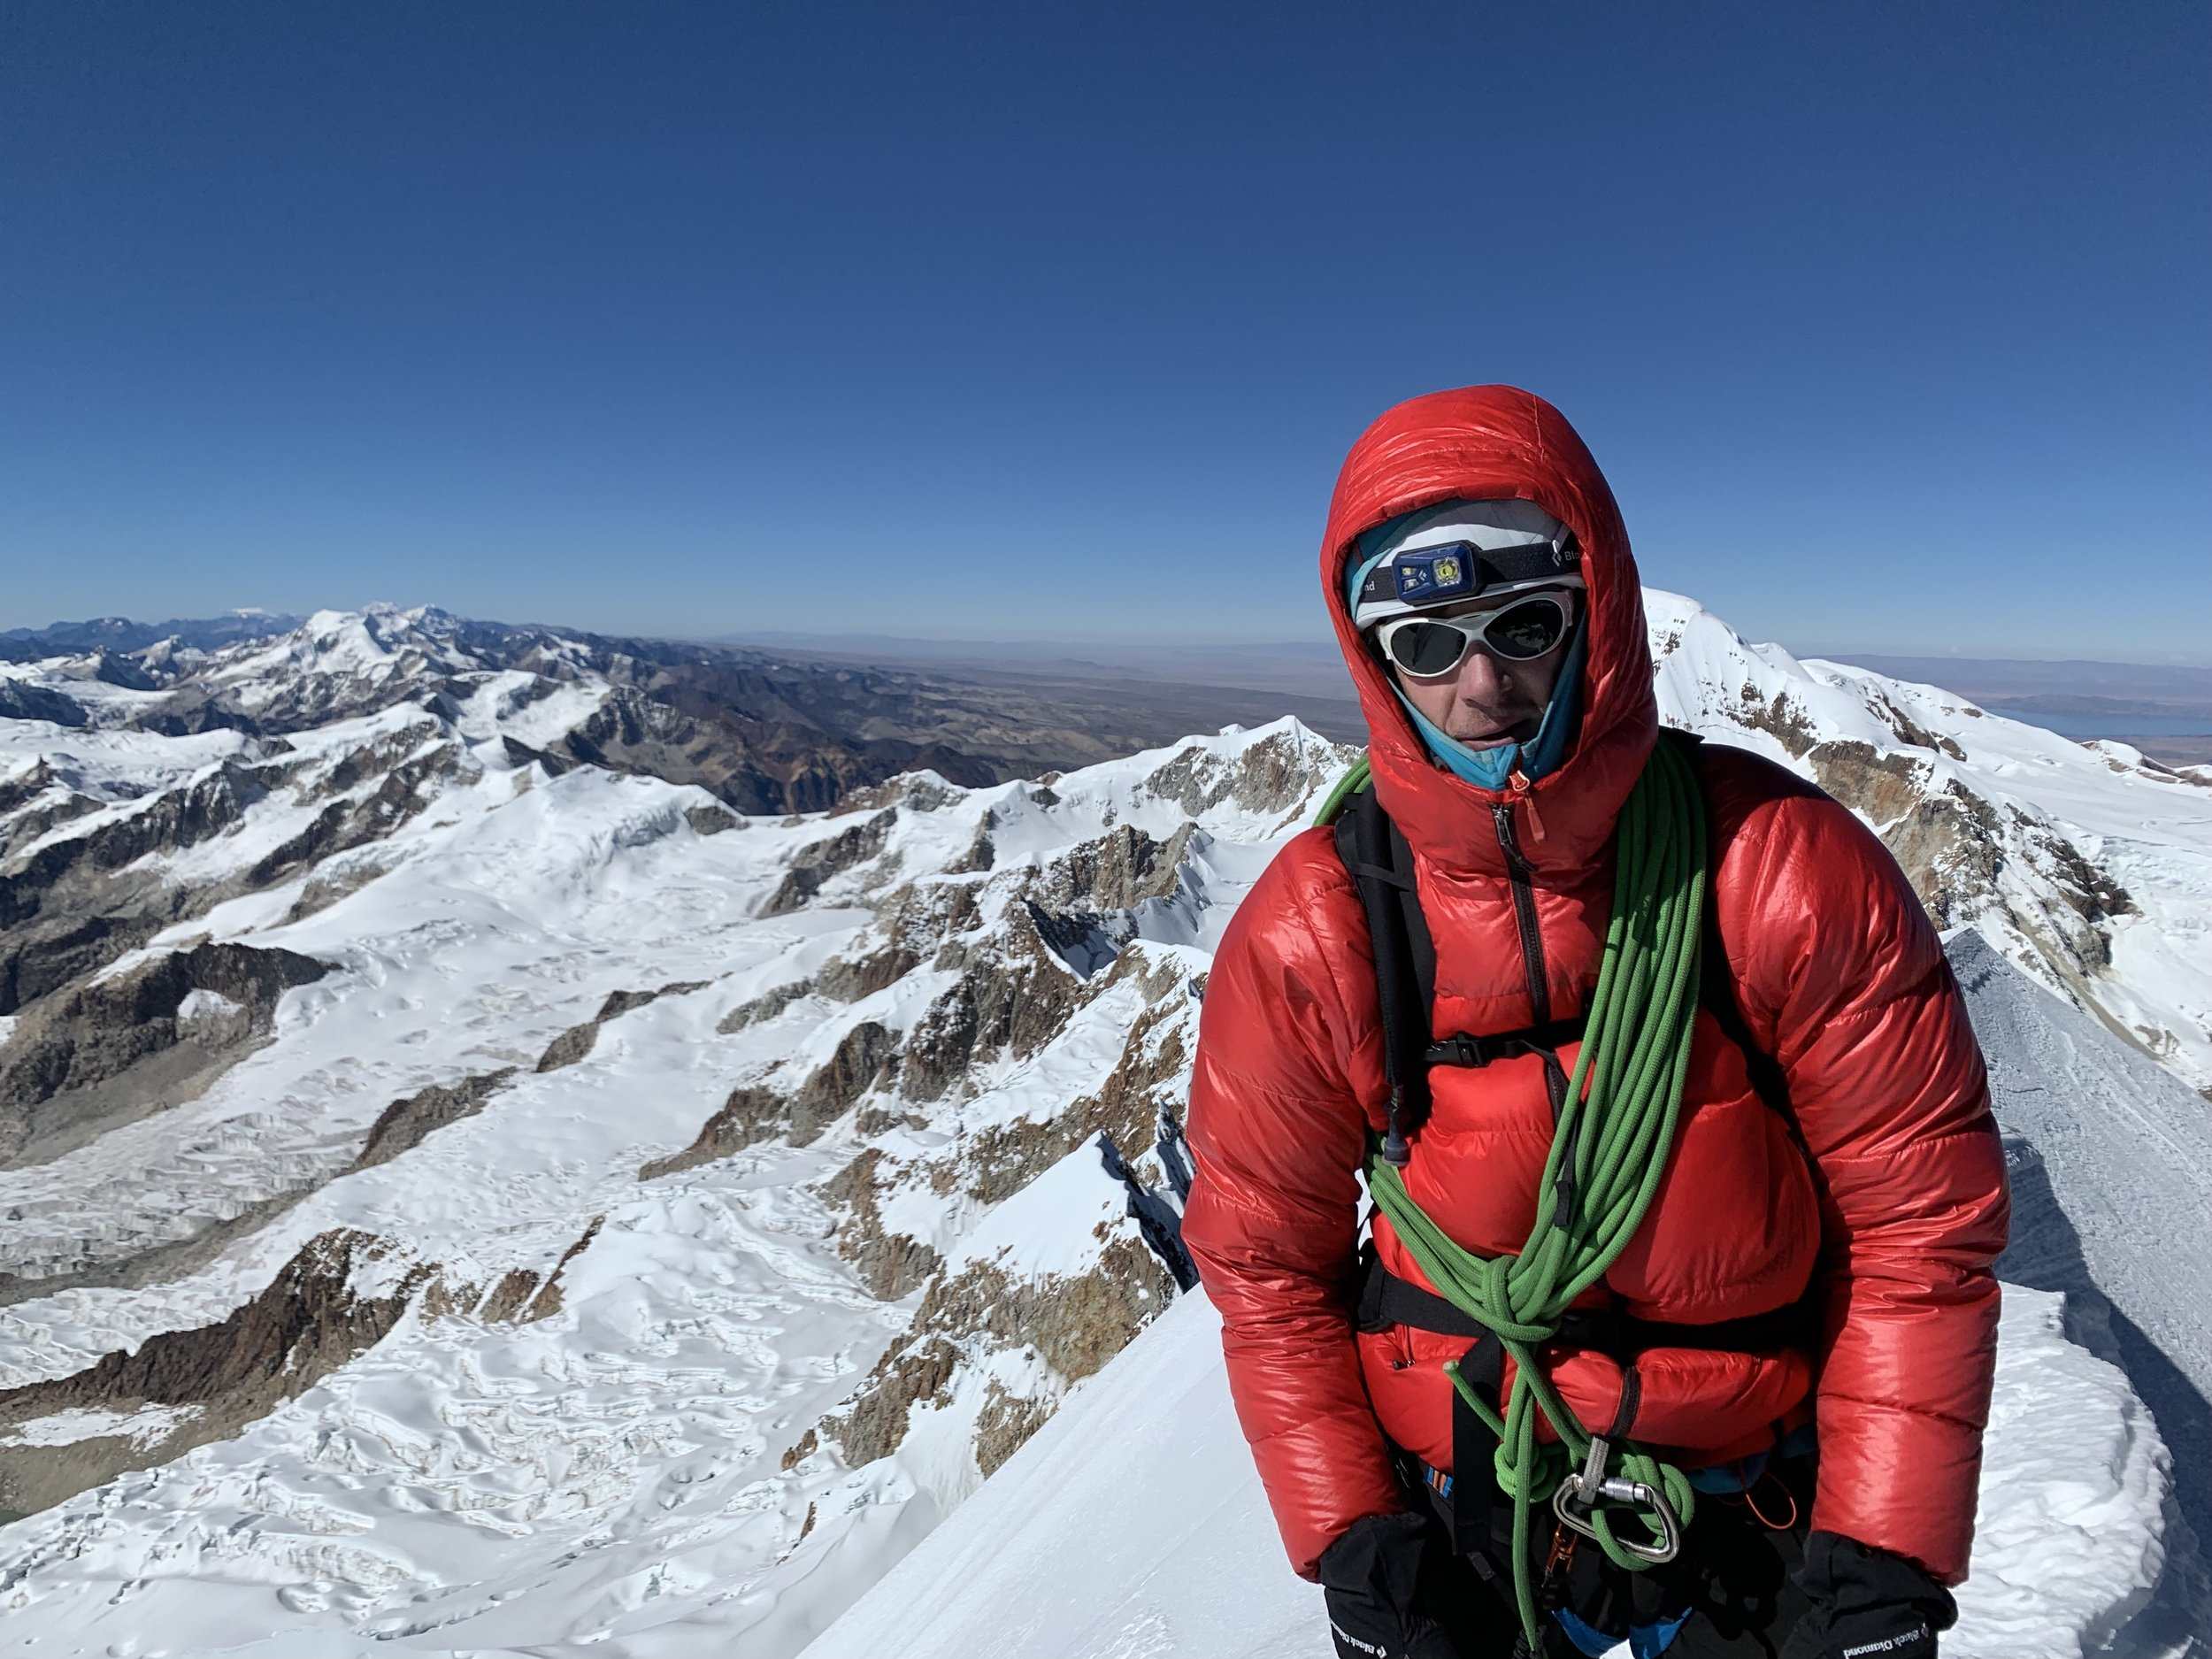 Me, looking cold on the summit